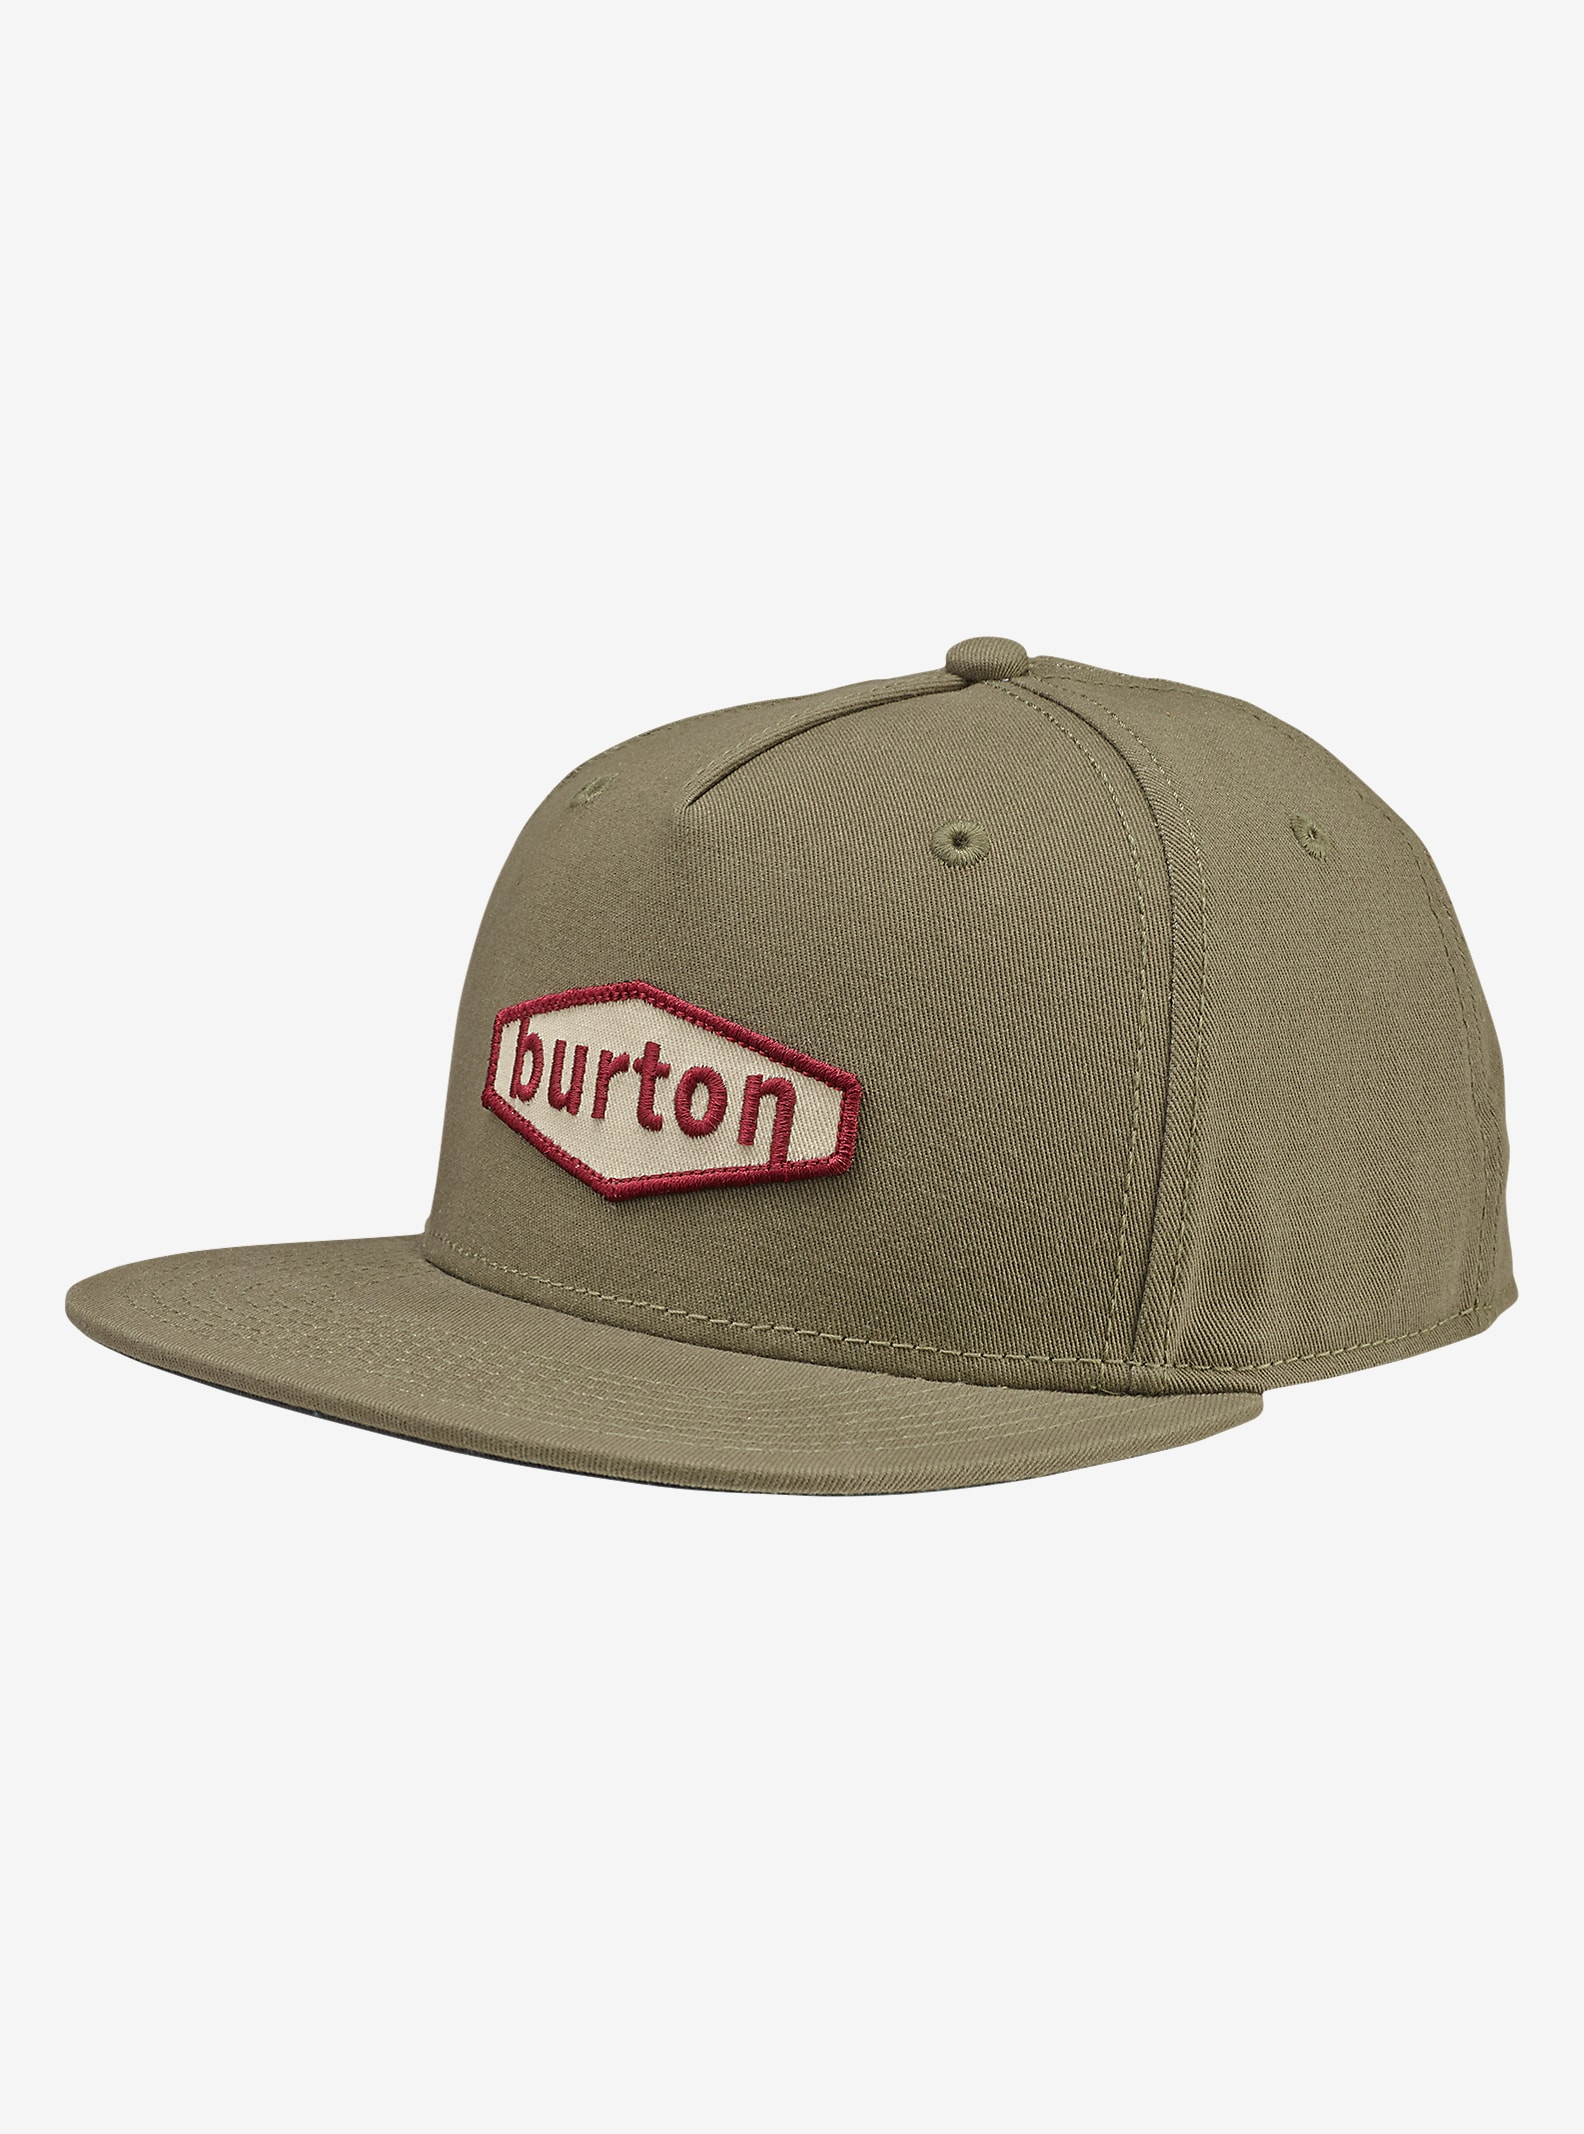 Burton Hardgoods Hat shown in Keef